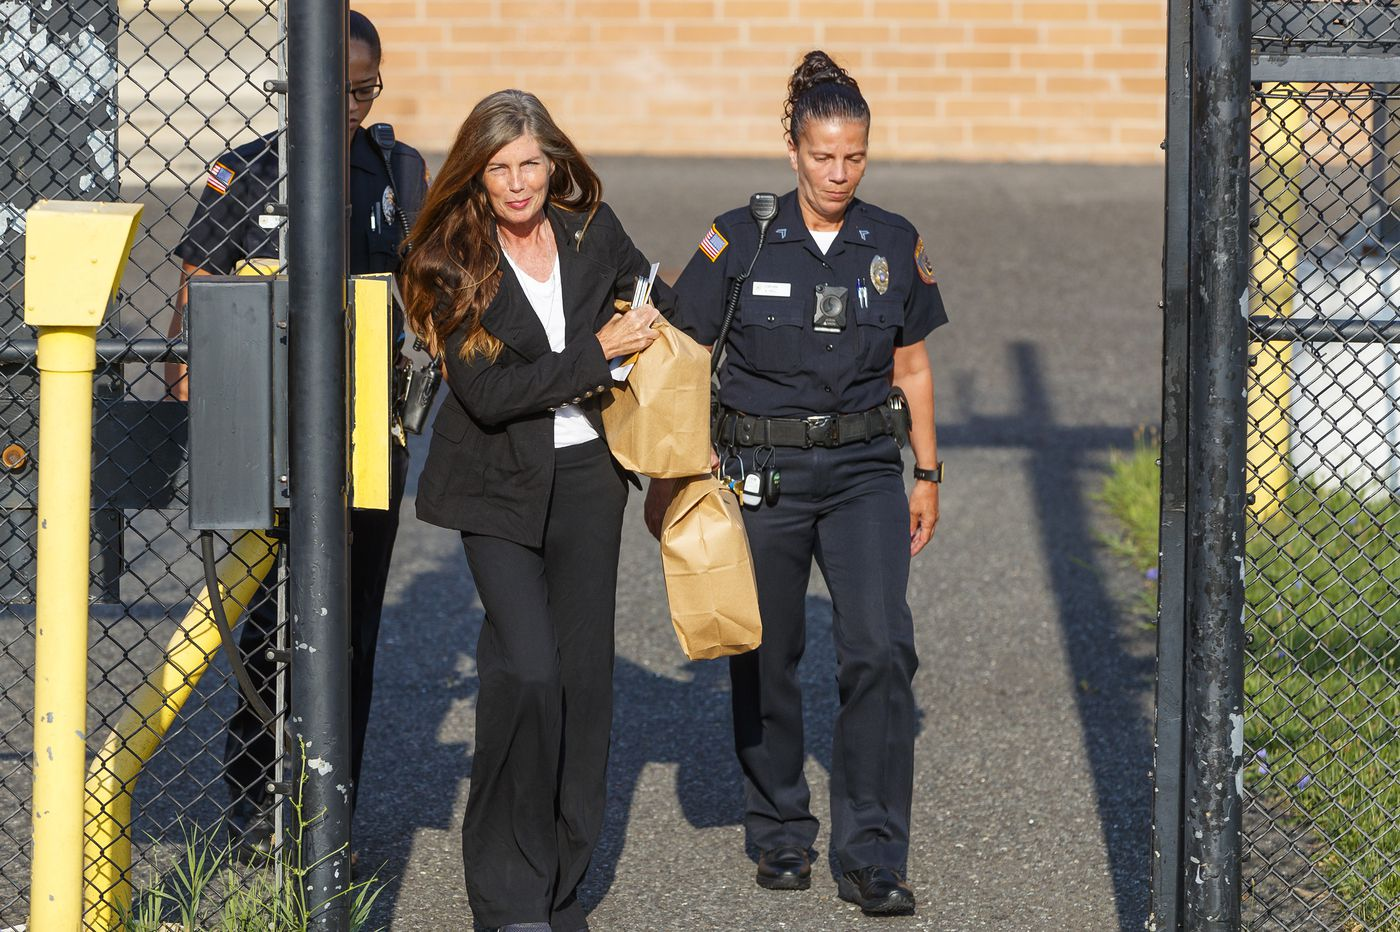 Former AG Kathleen Kane released from jail; 'Grateful,' she says